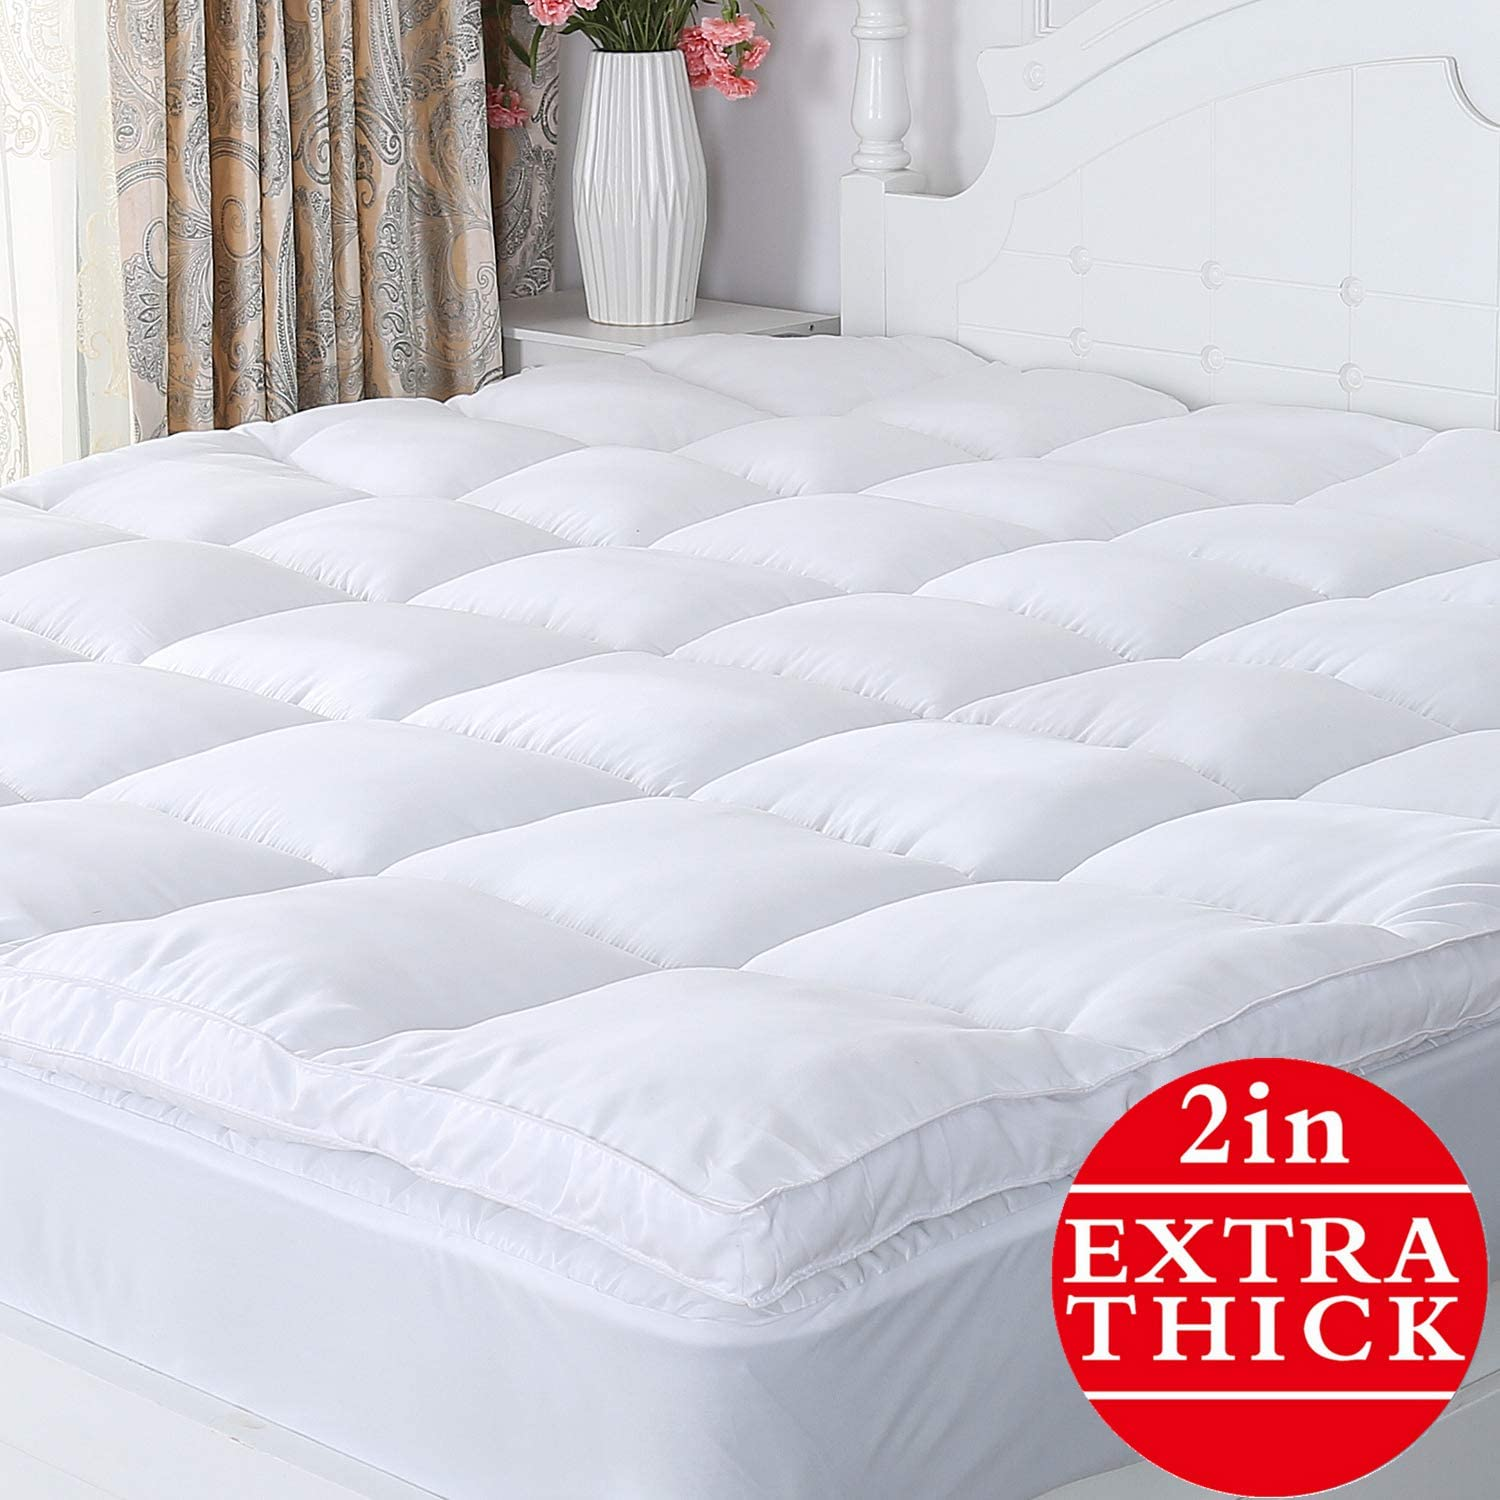 Naluka Mattress Topper King Size, Premium Hotel Collection Down Alternative Quilted Featherbed Luxury Microfiber 2 Inch Thick Mattress Cover(76''x80''